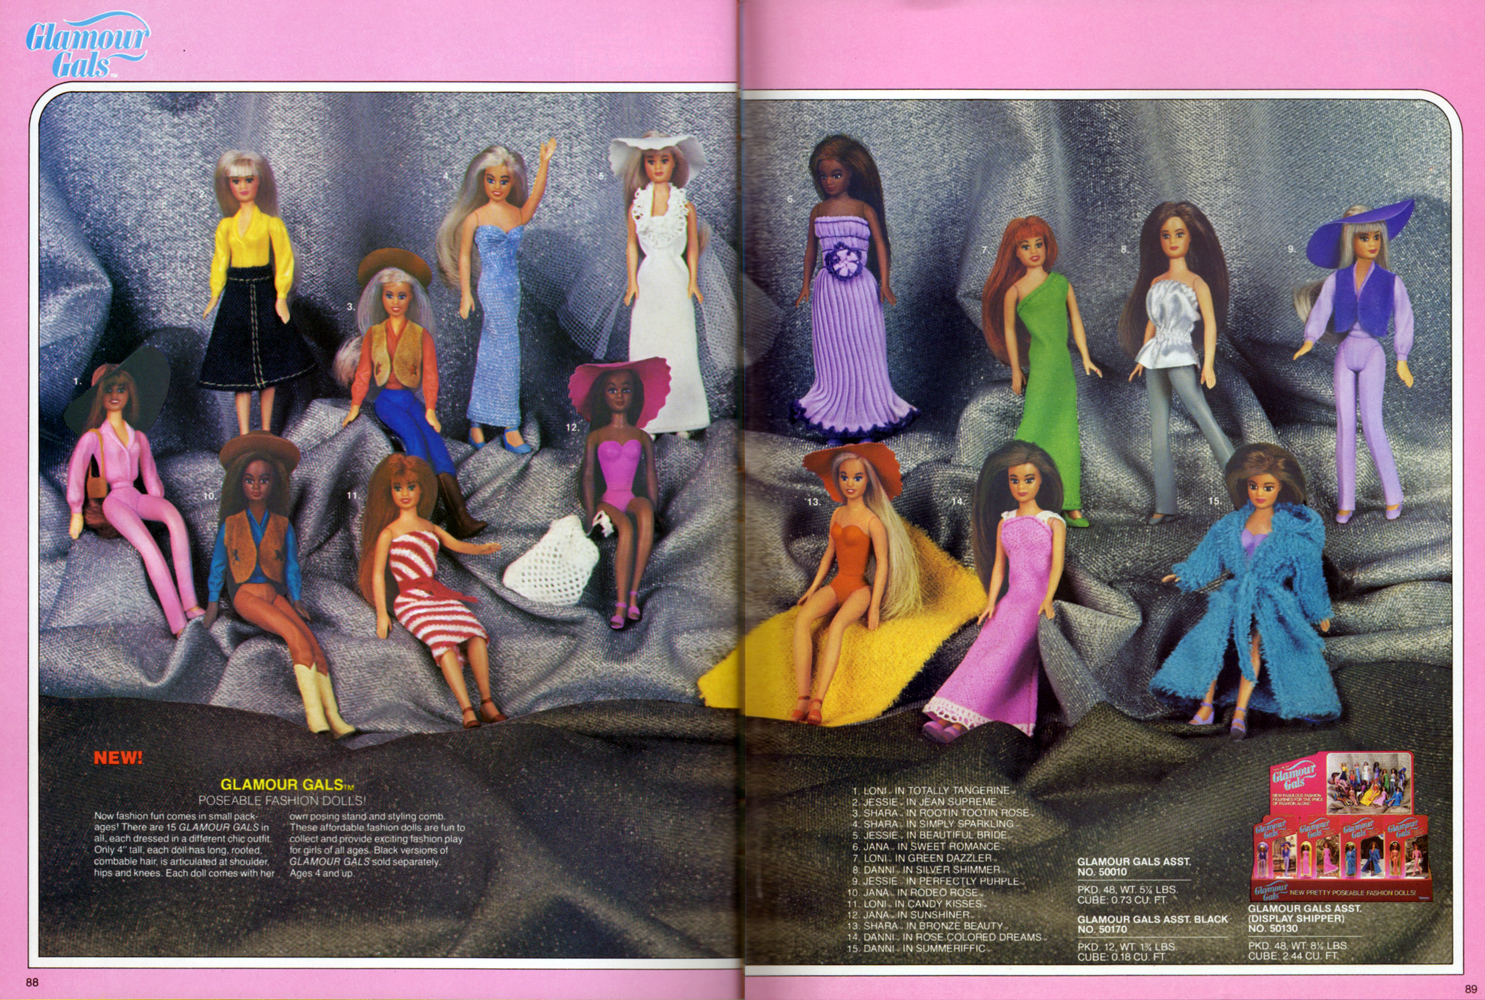 Glamour Gals, poseable fashion dolls assortment from Kenner Products, 1981.